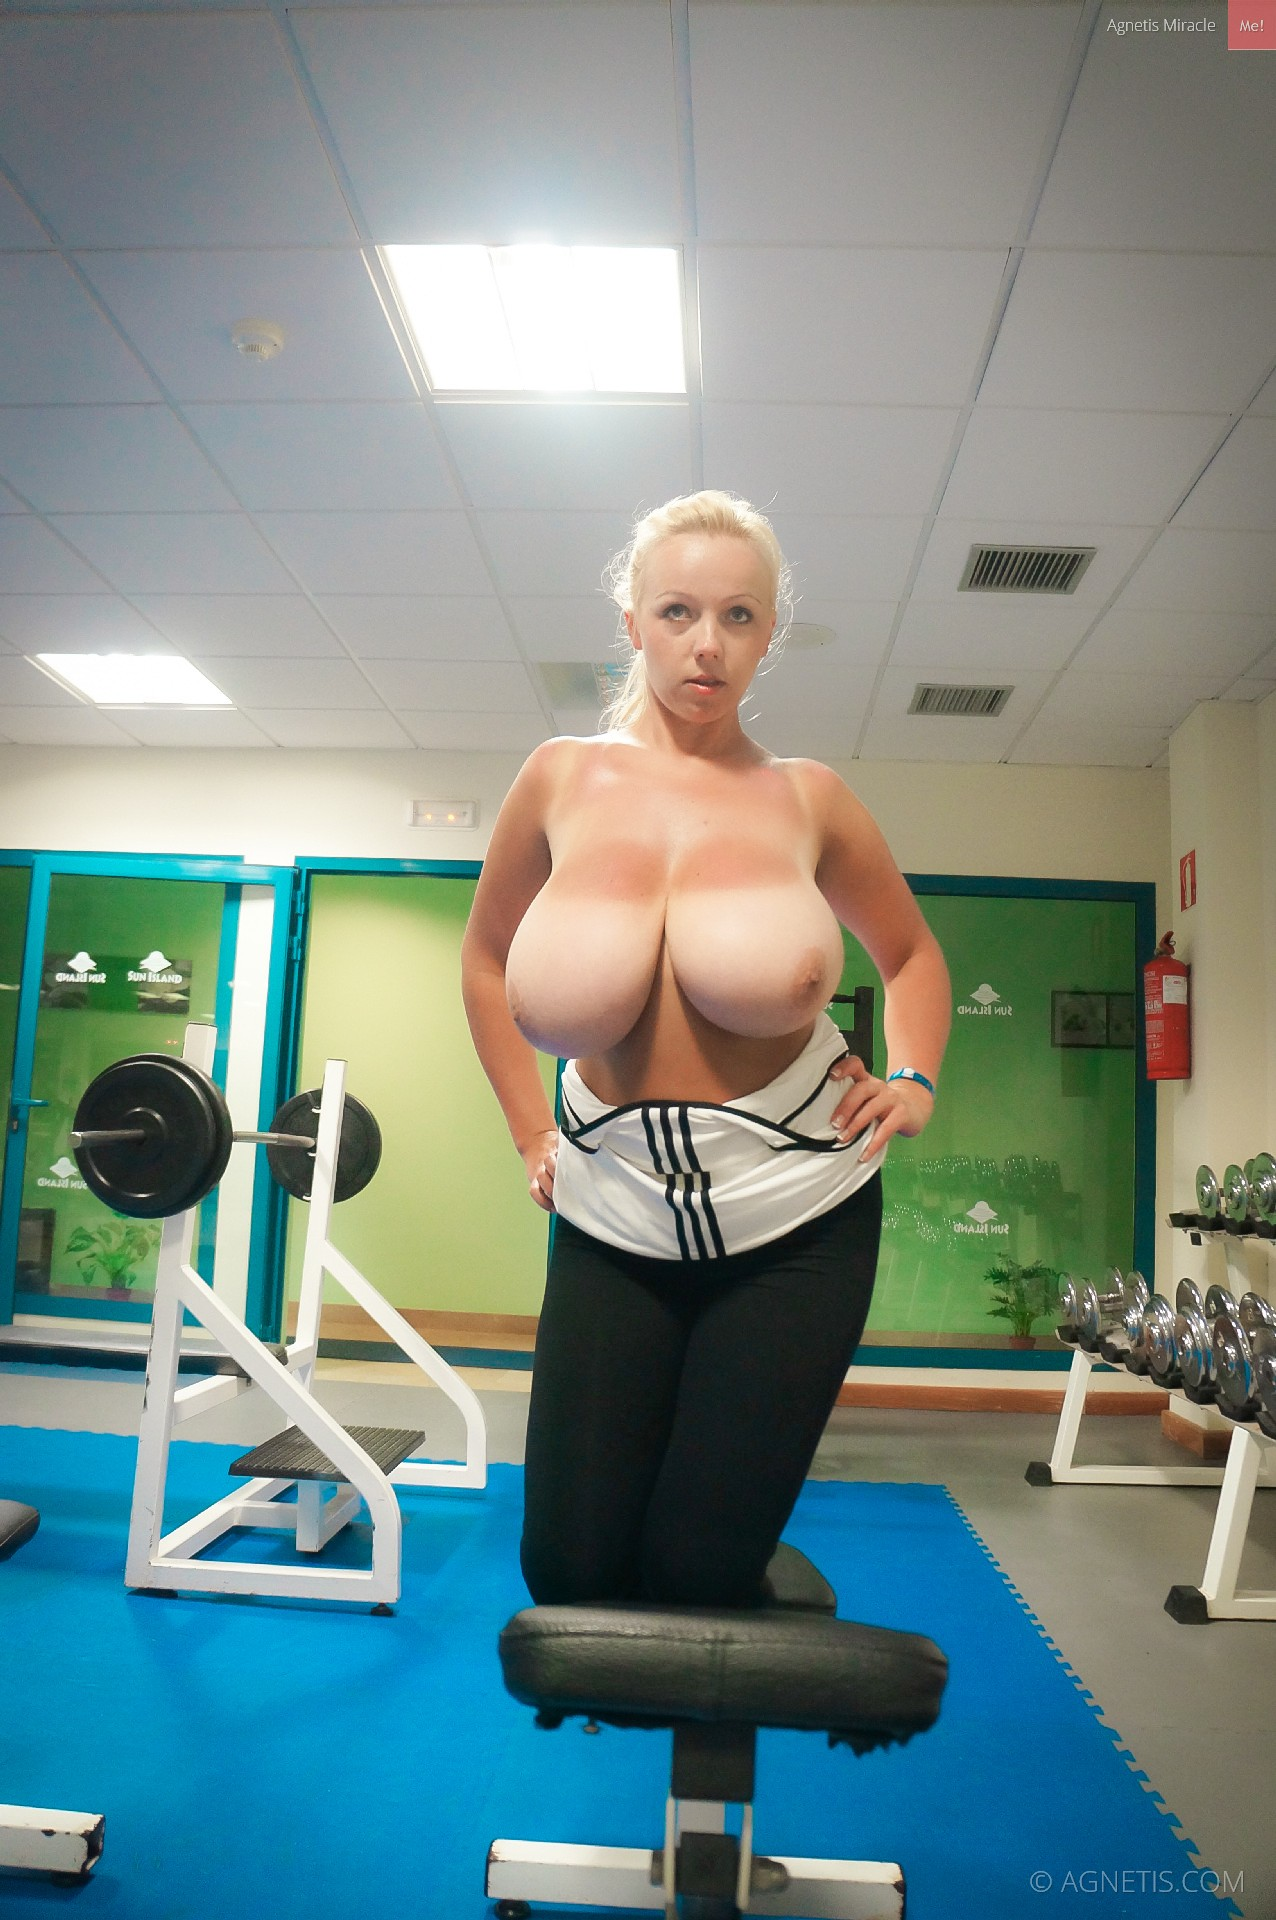 boob work out